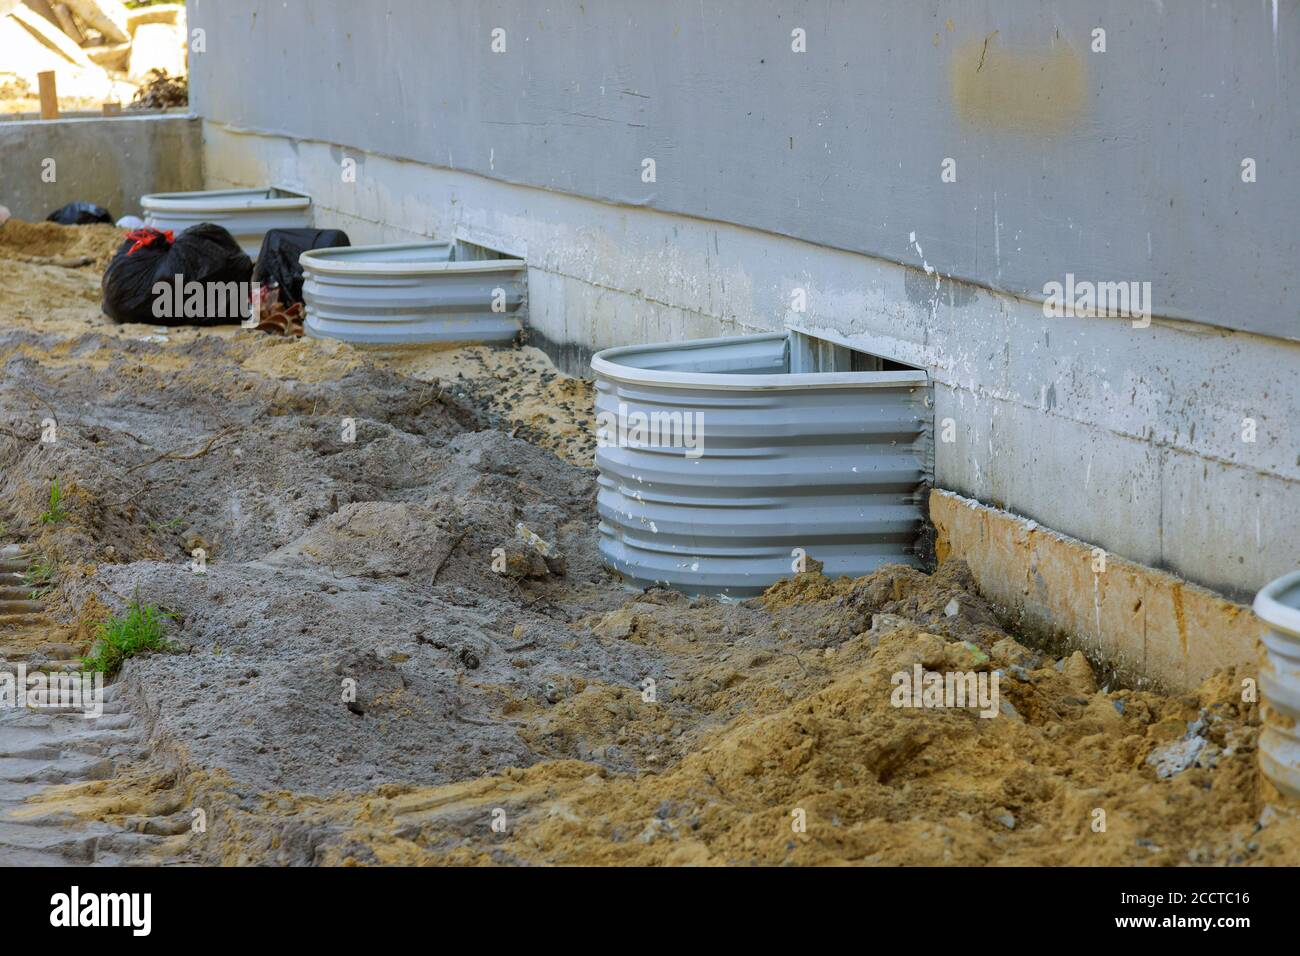 Window Well Liners High Resolution Stock Photography And Images Alamy